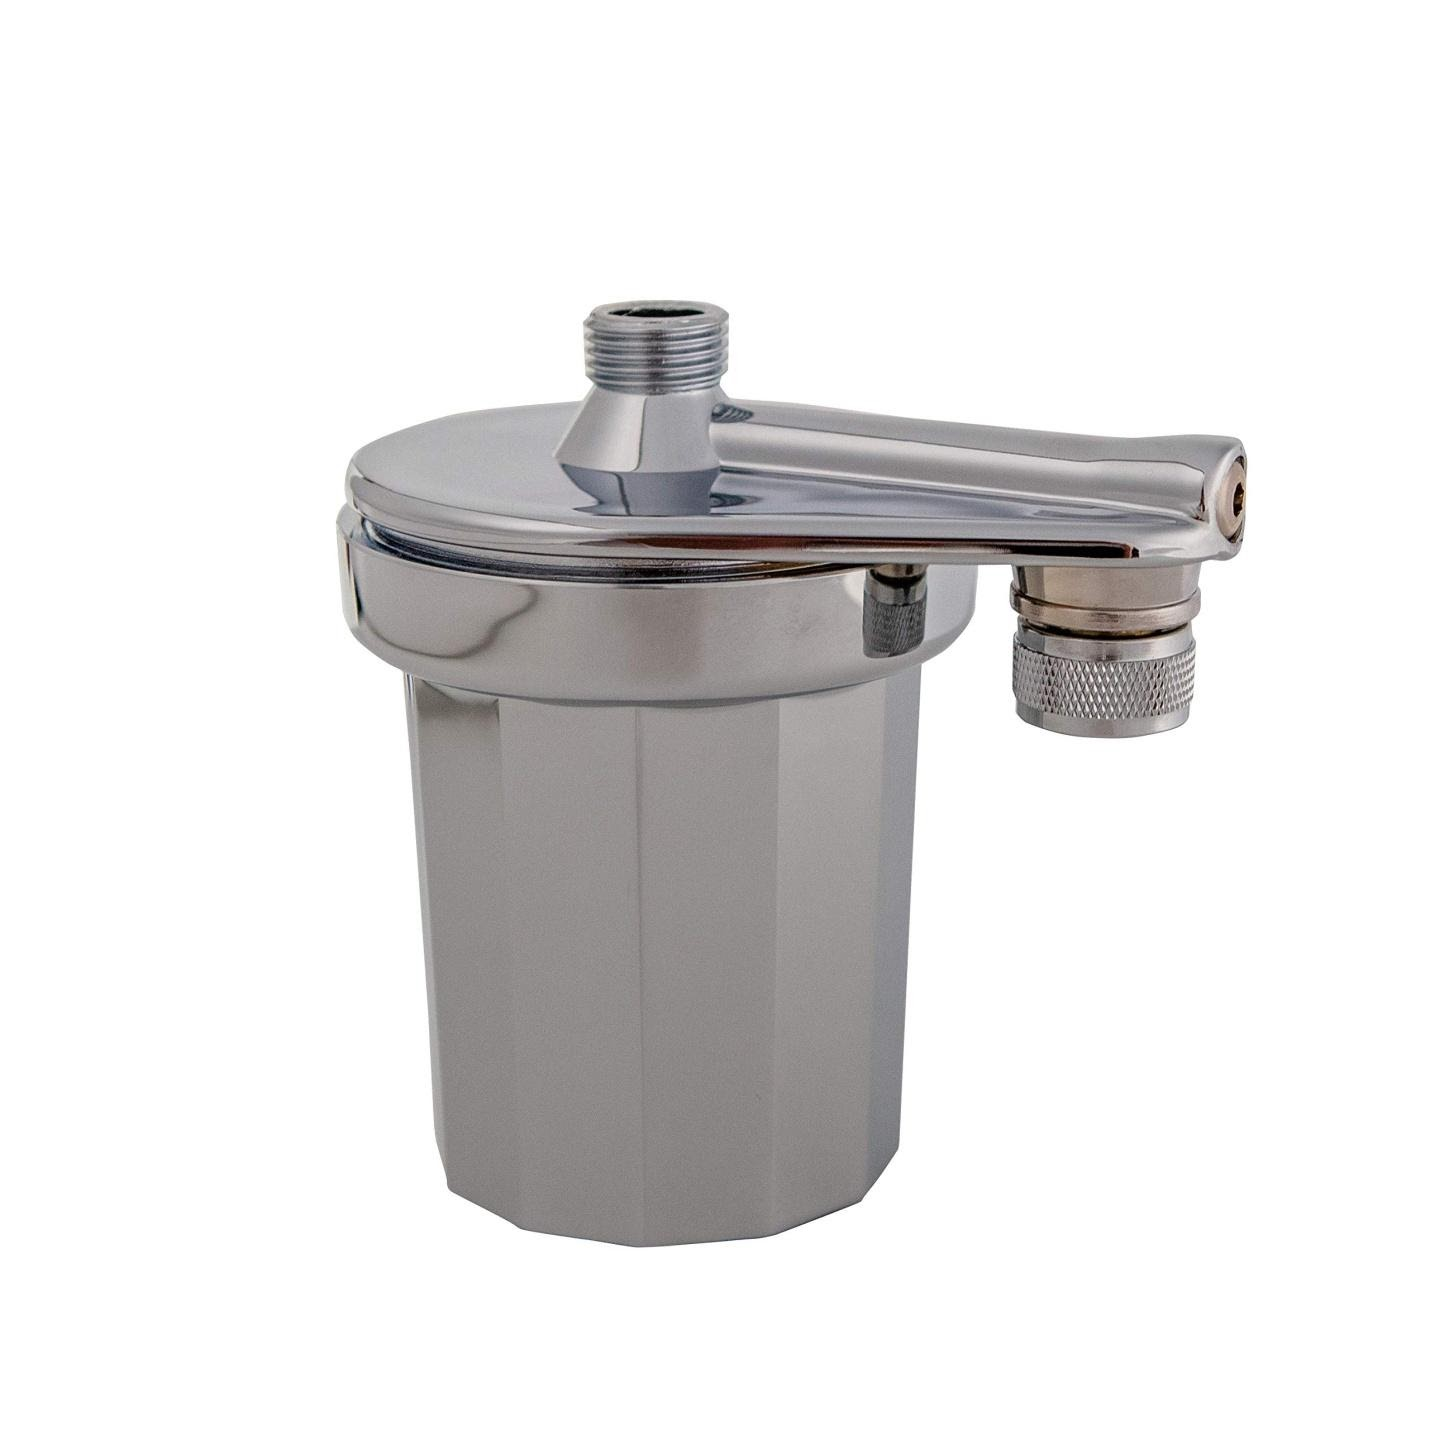 What Makes a Reverse Osmosis Water Filter The Best Home Filter?